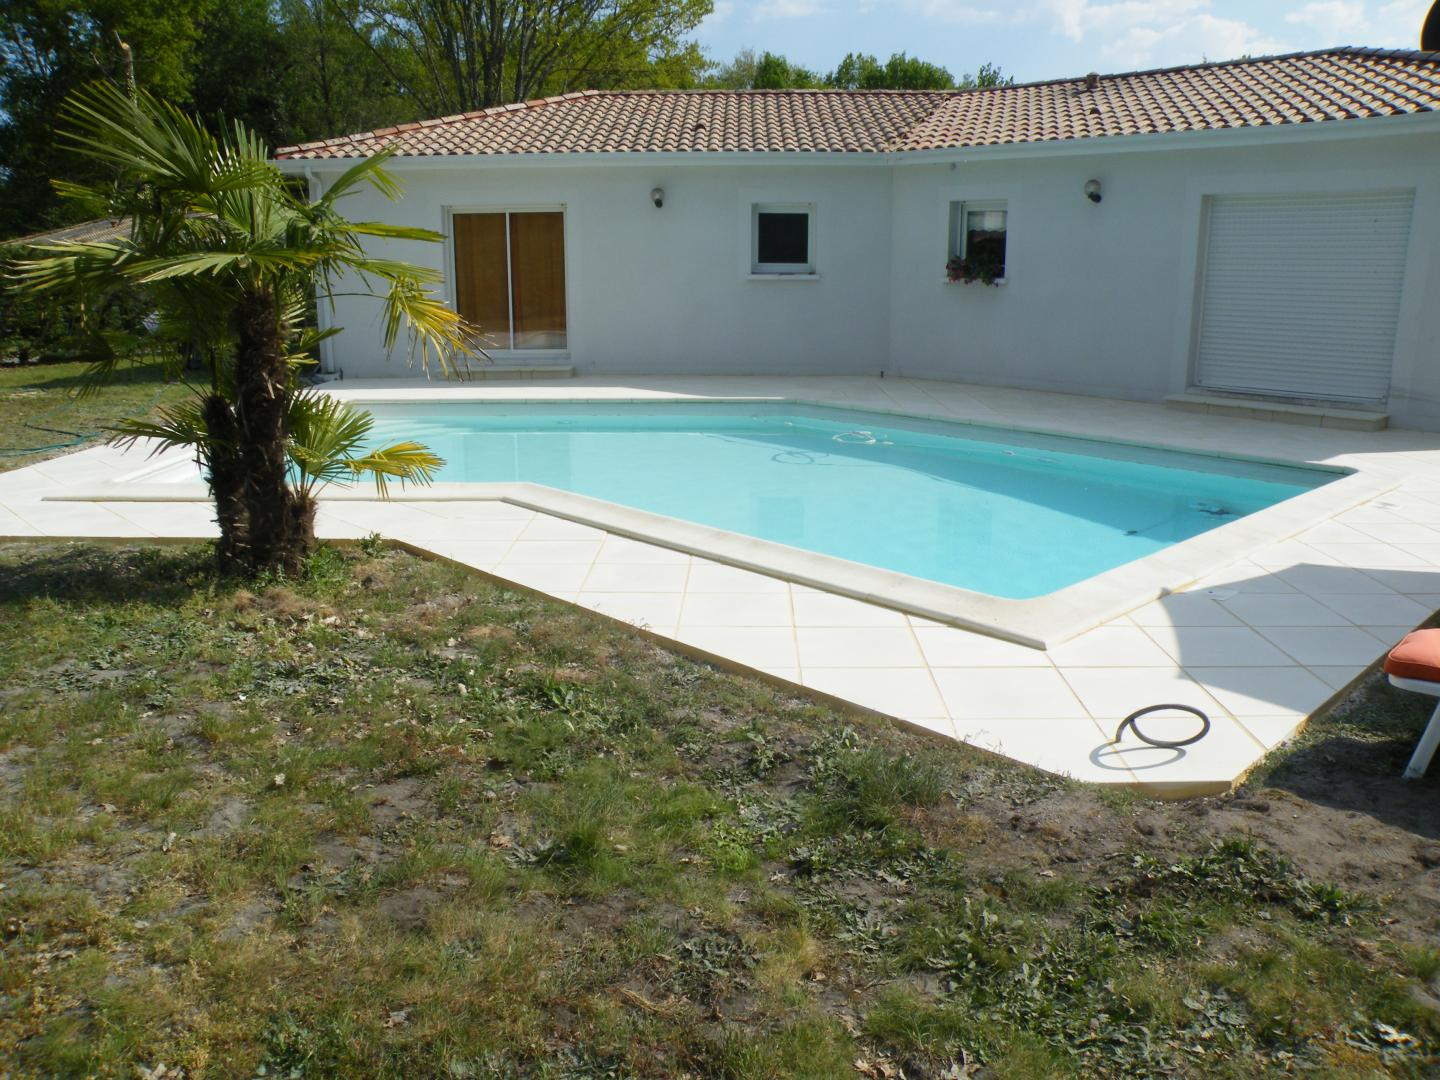 Agrandissement maisons ludon medoc aquitaine bio for Budget construction piscine